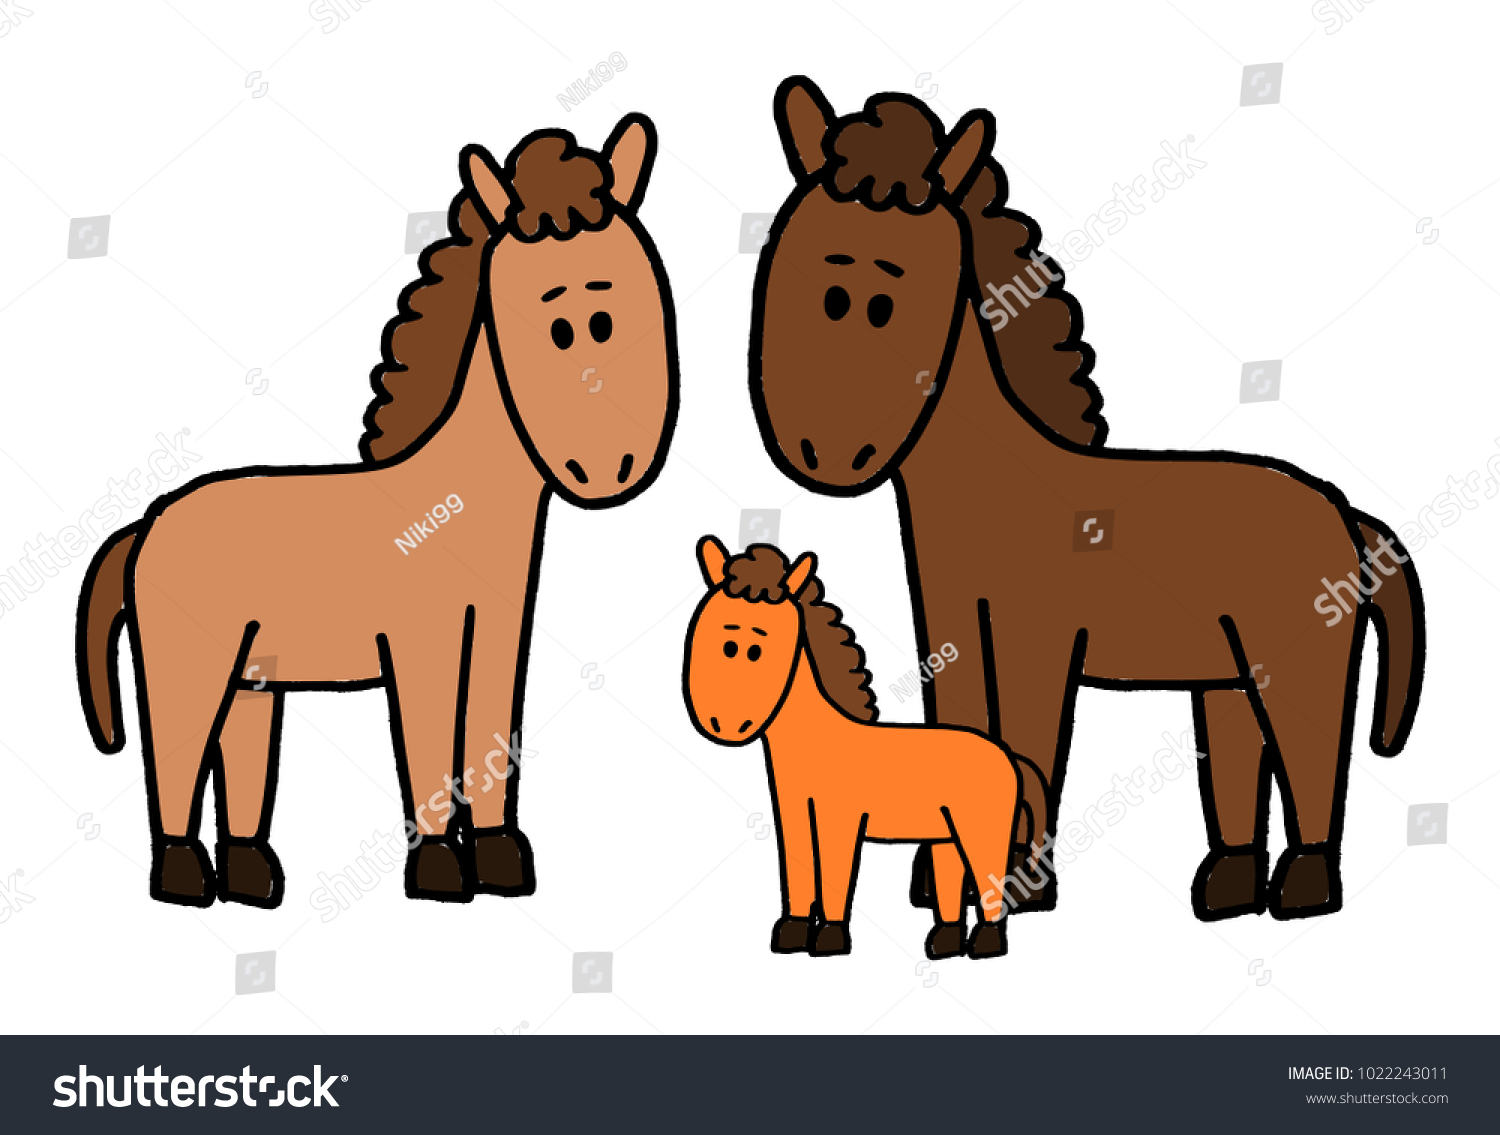 Cute Kid Easy Vector Illustration Horse Stock Vector Royalty Free 1022243011